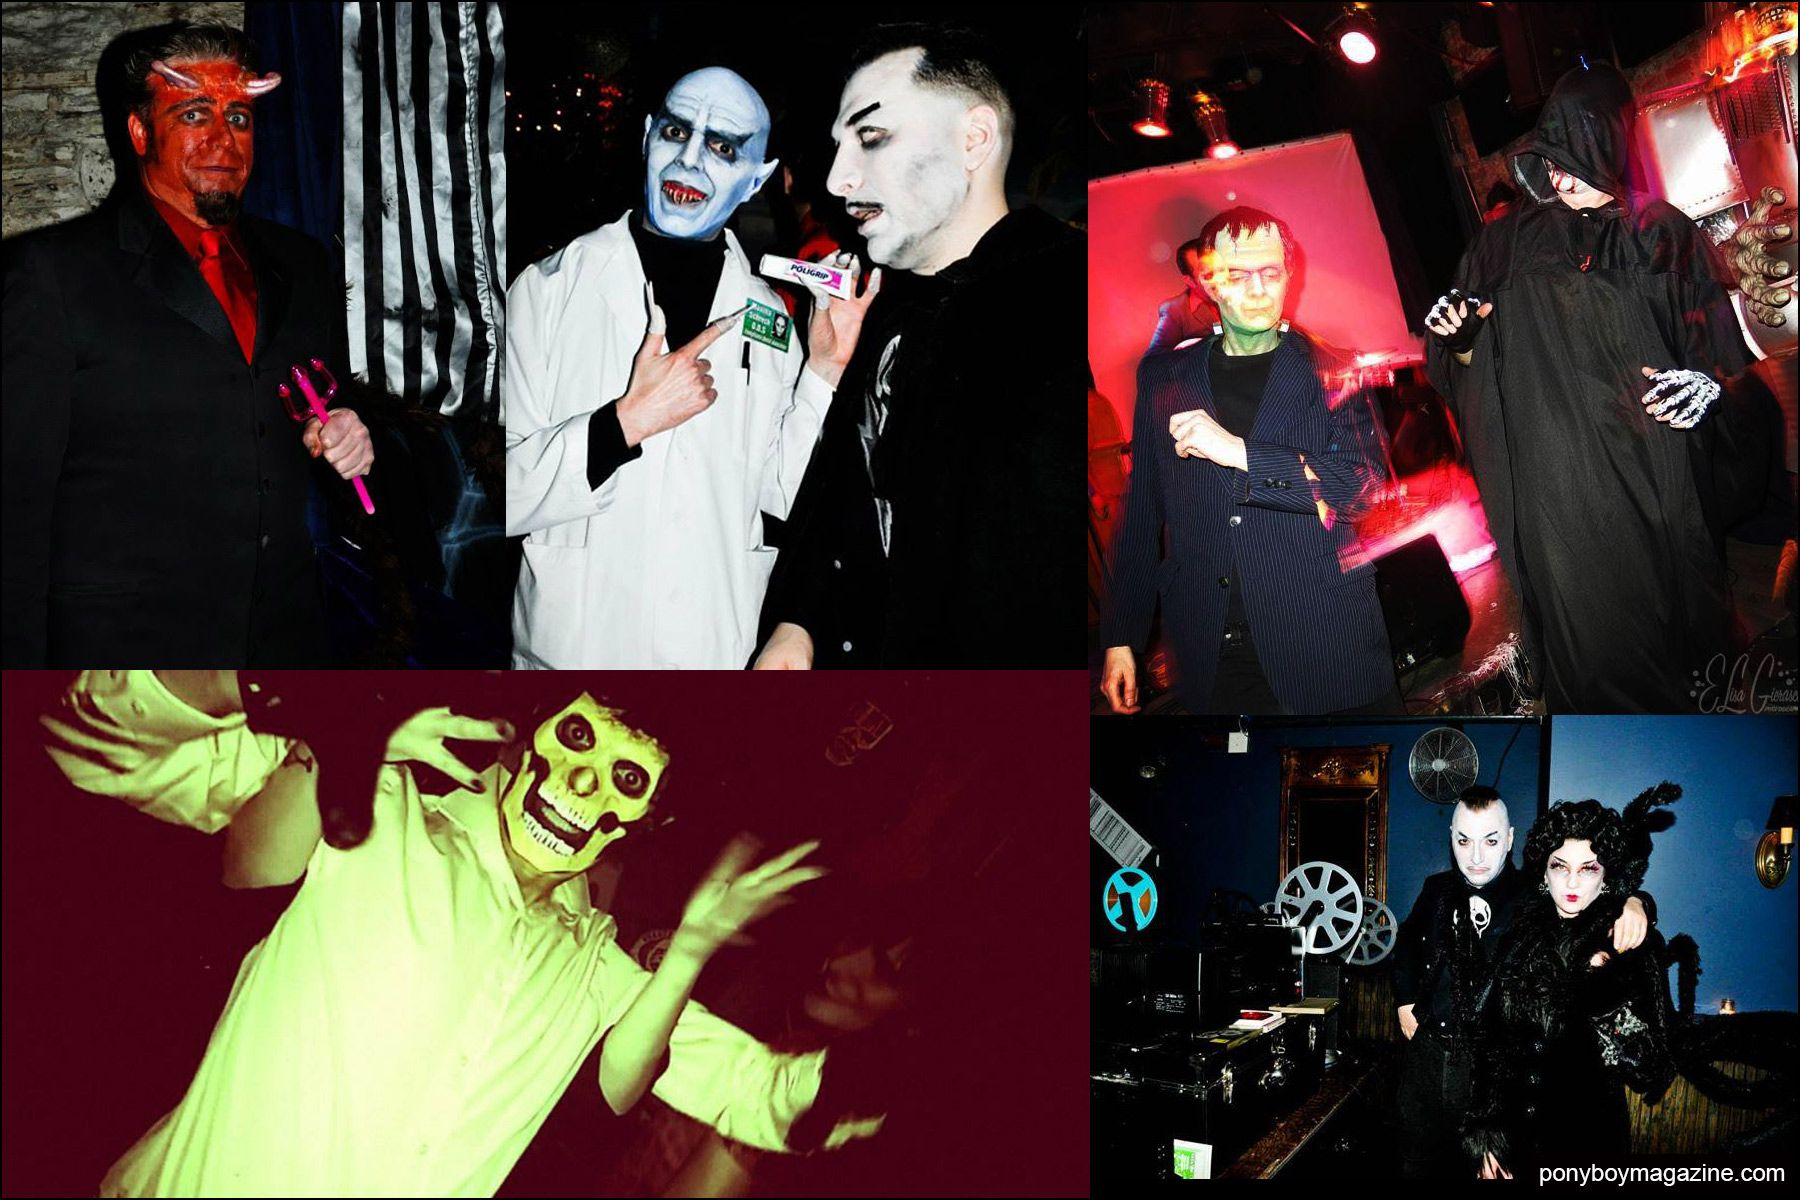 Festive partygoers snapped at the Midnite Monster Hop in New York City. Ponyboy magazine NY.